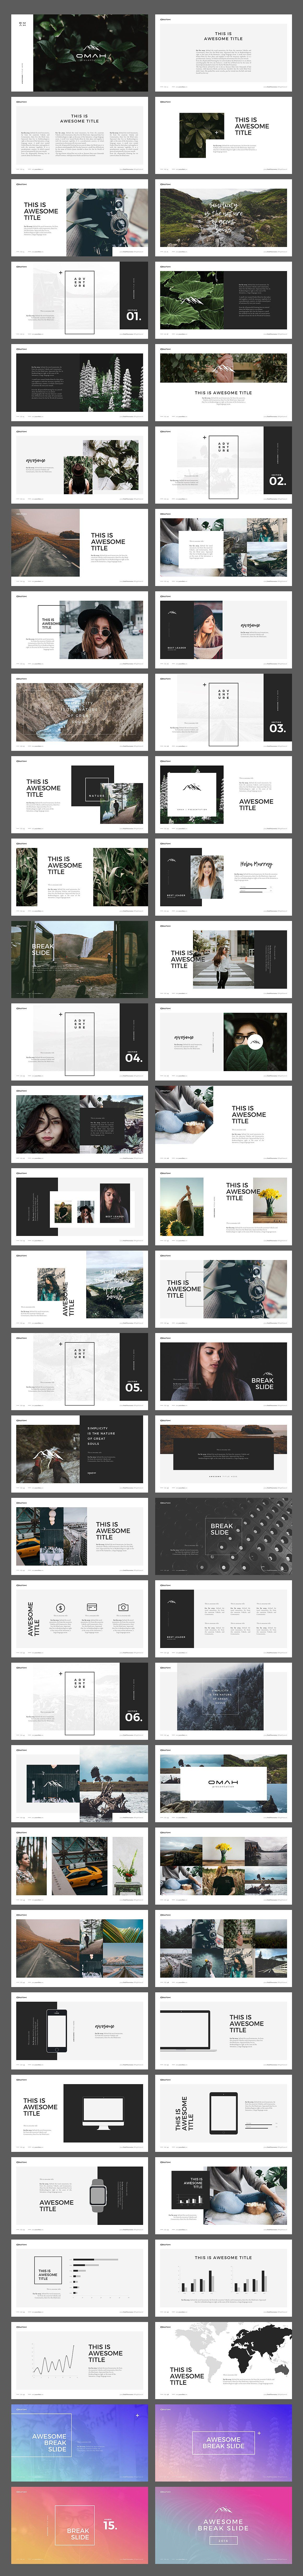 Omah powerpoint template top 10 most sold powerpoint bundle omah powerpoint template top 10 most sold powerpoint bundle powerpoint themestemplates alramifo Image collections